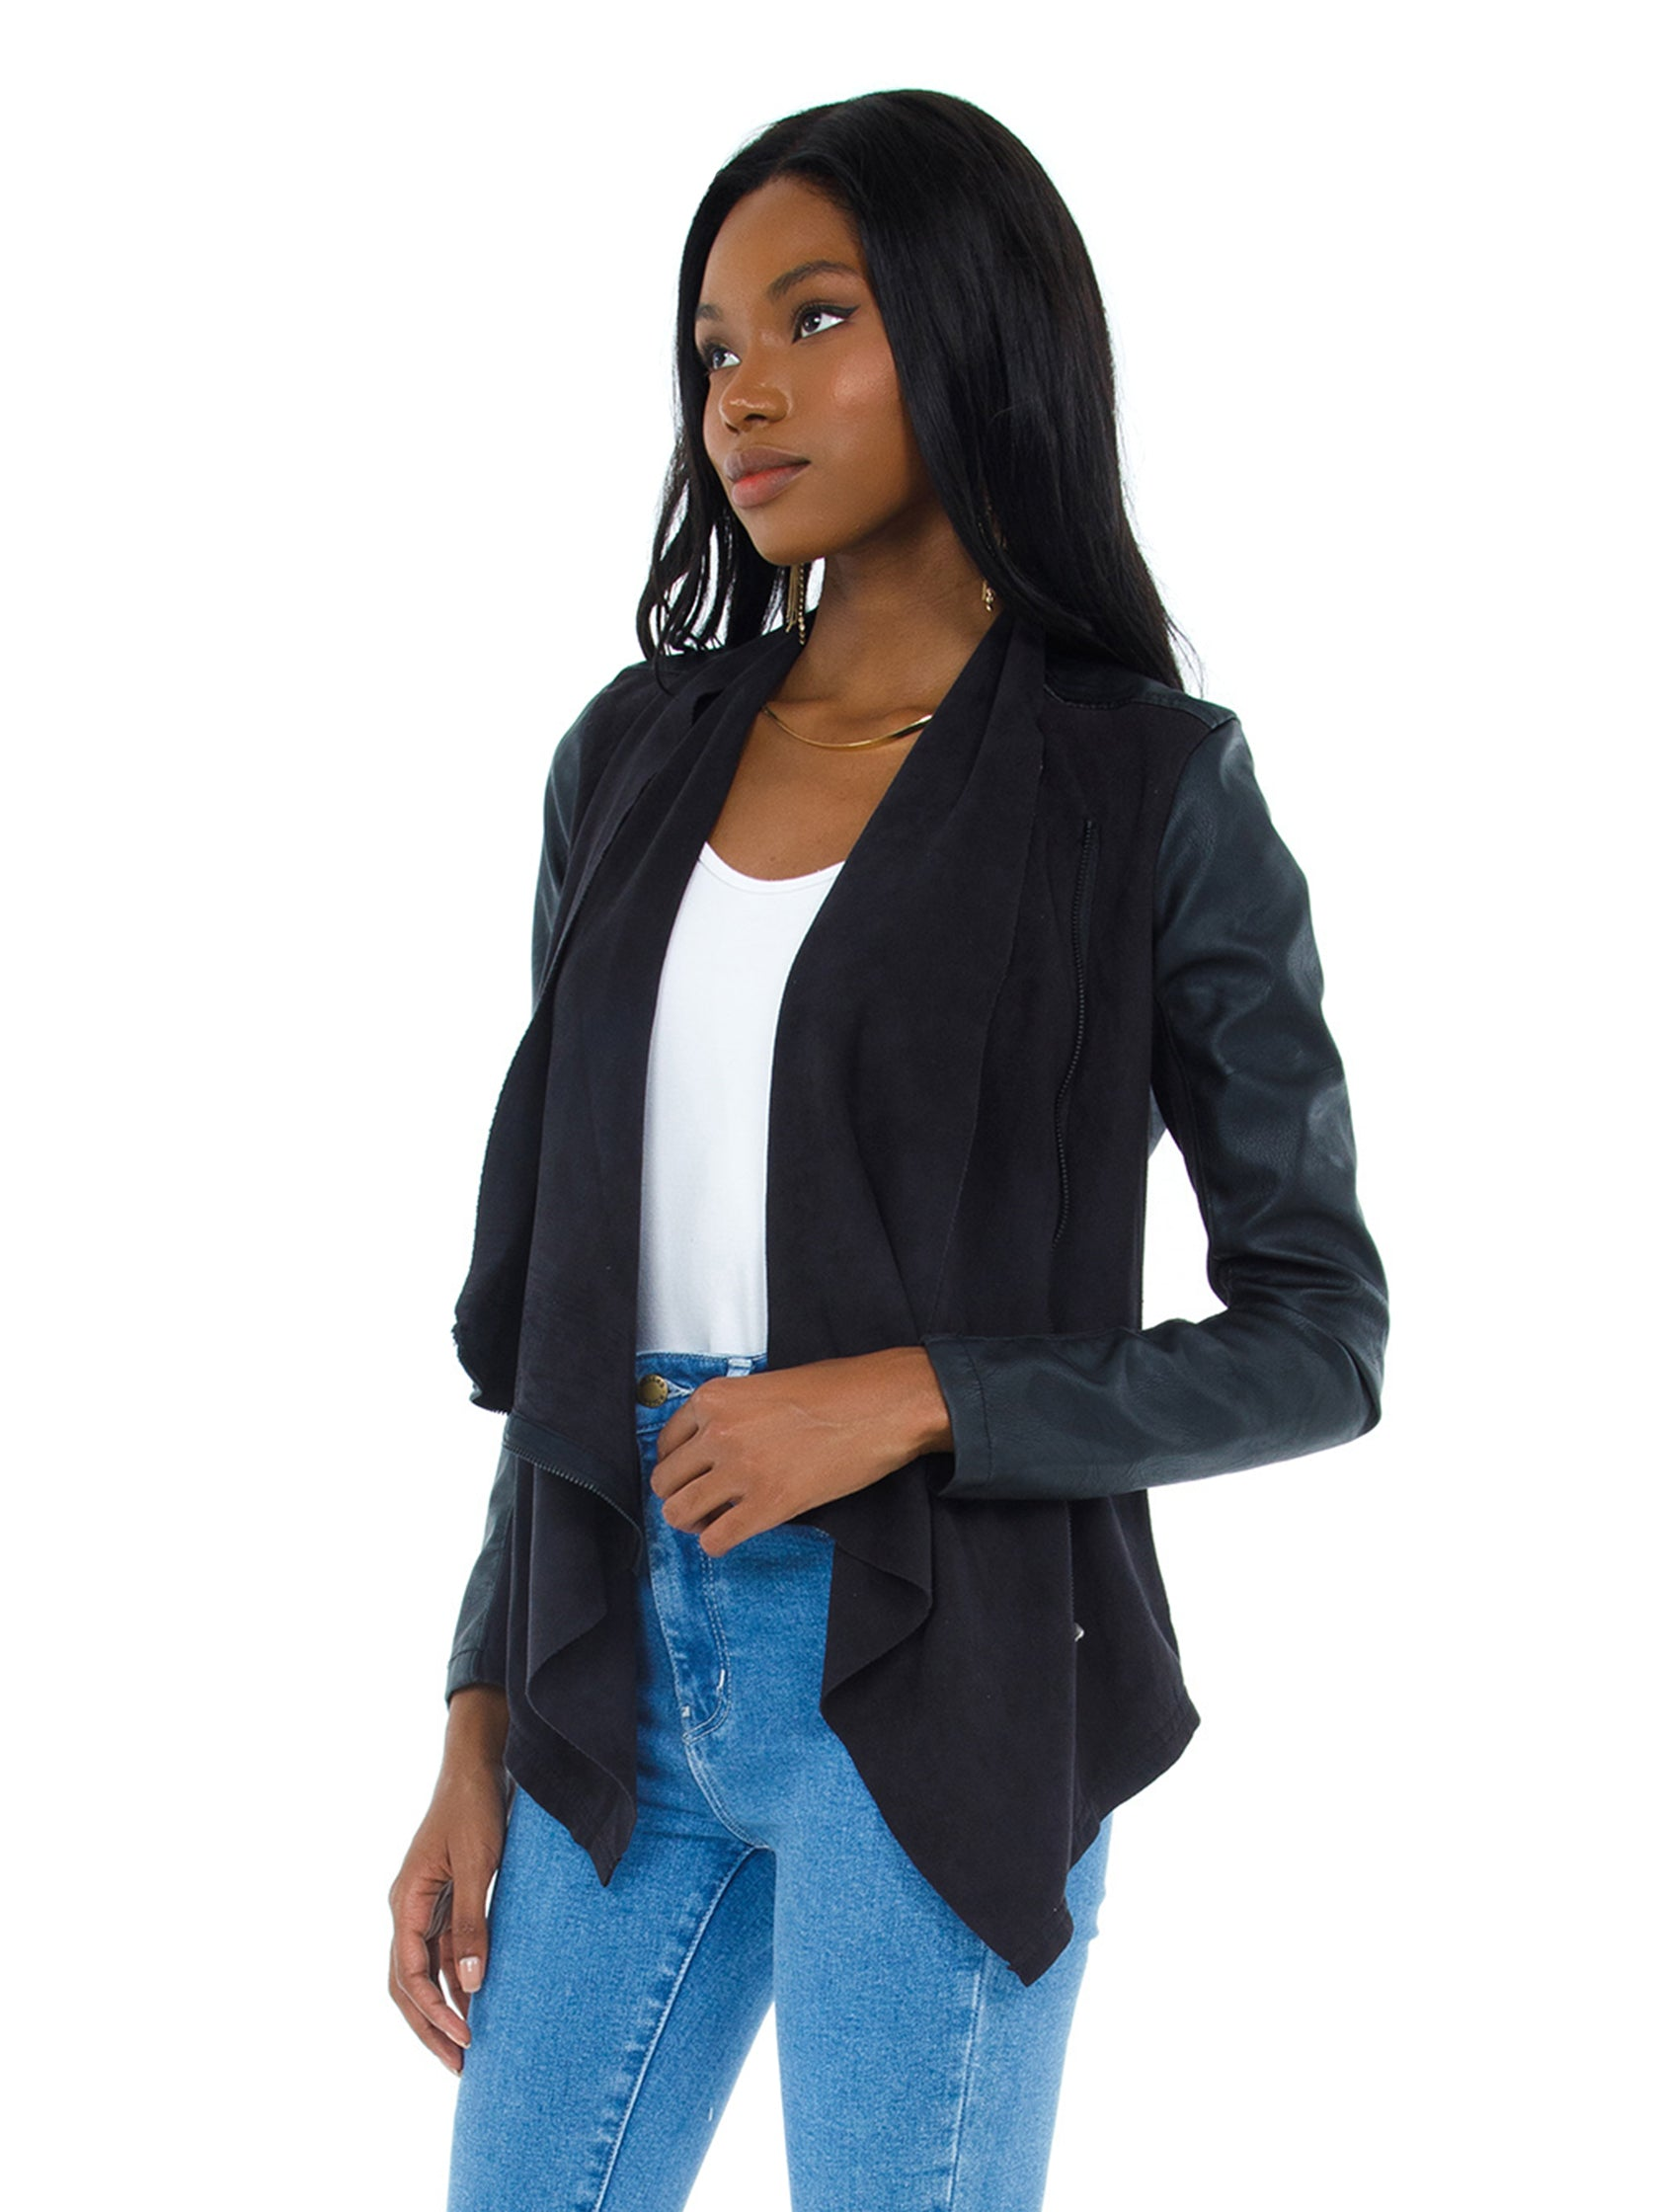 Women wearing a jacket rental from BLANKNYC called Whatever It Takes Jacket